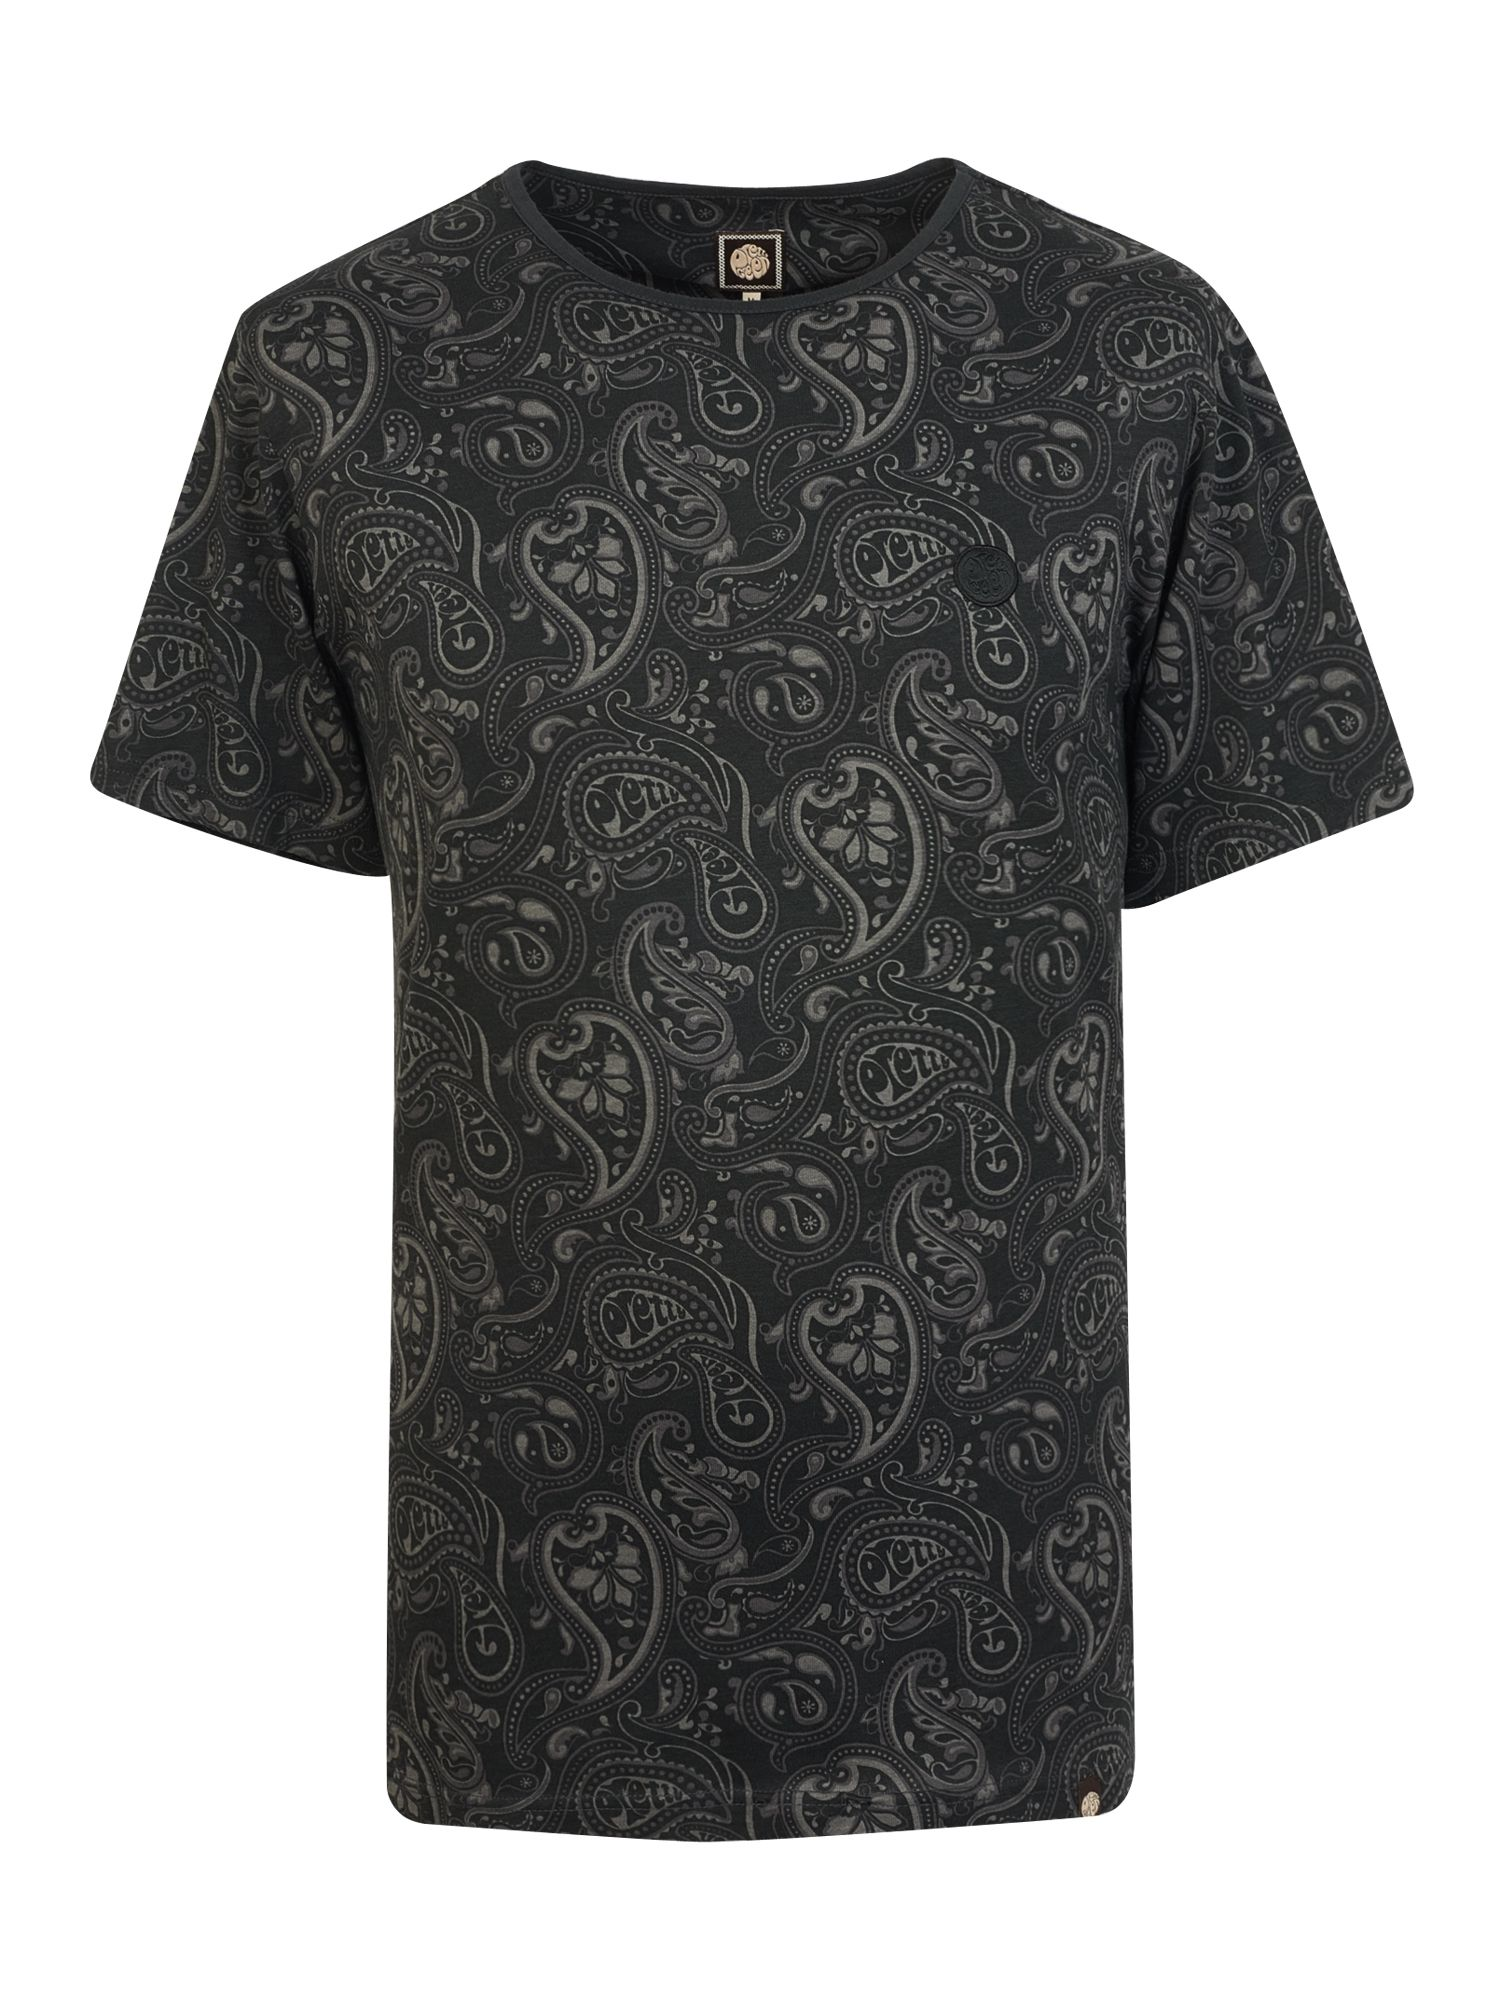 Men's Pretty Green Paisley Print T-Shirt, Black